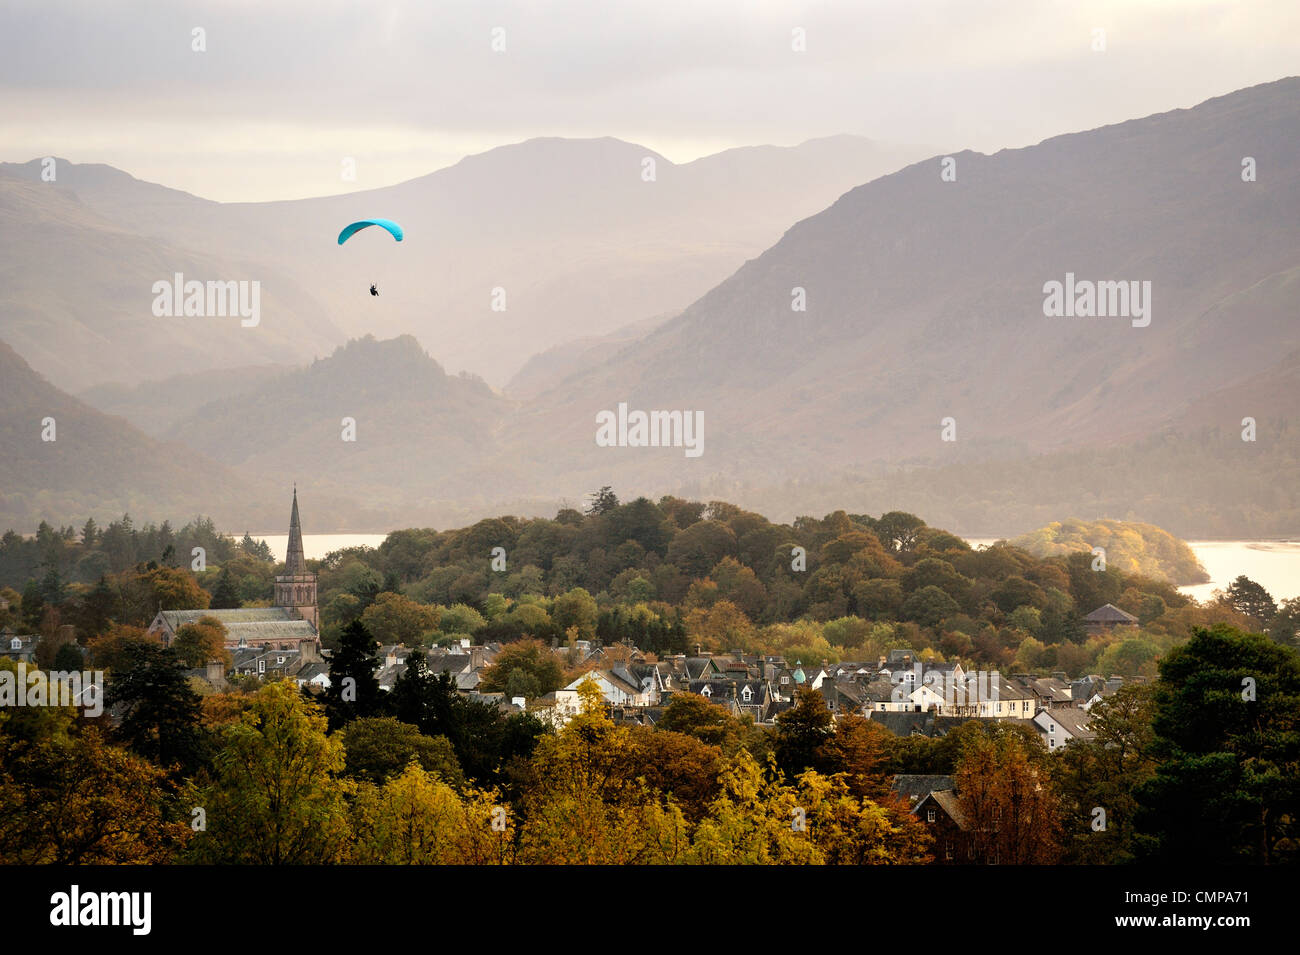 Lake District National Park, Cumbria, England. Paraglider over Keswick town and Derwentwater. South toward Borrowdale. - Stock Image